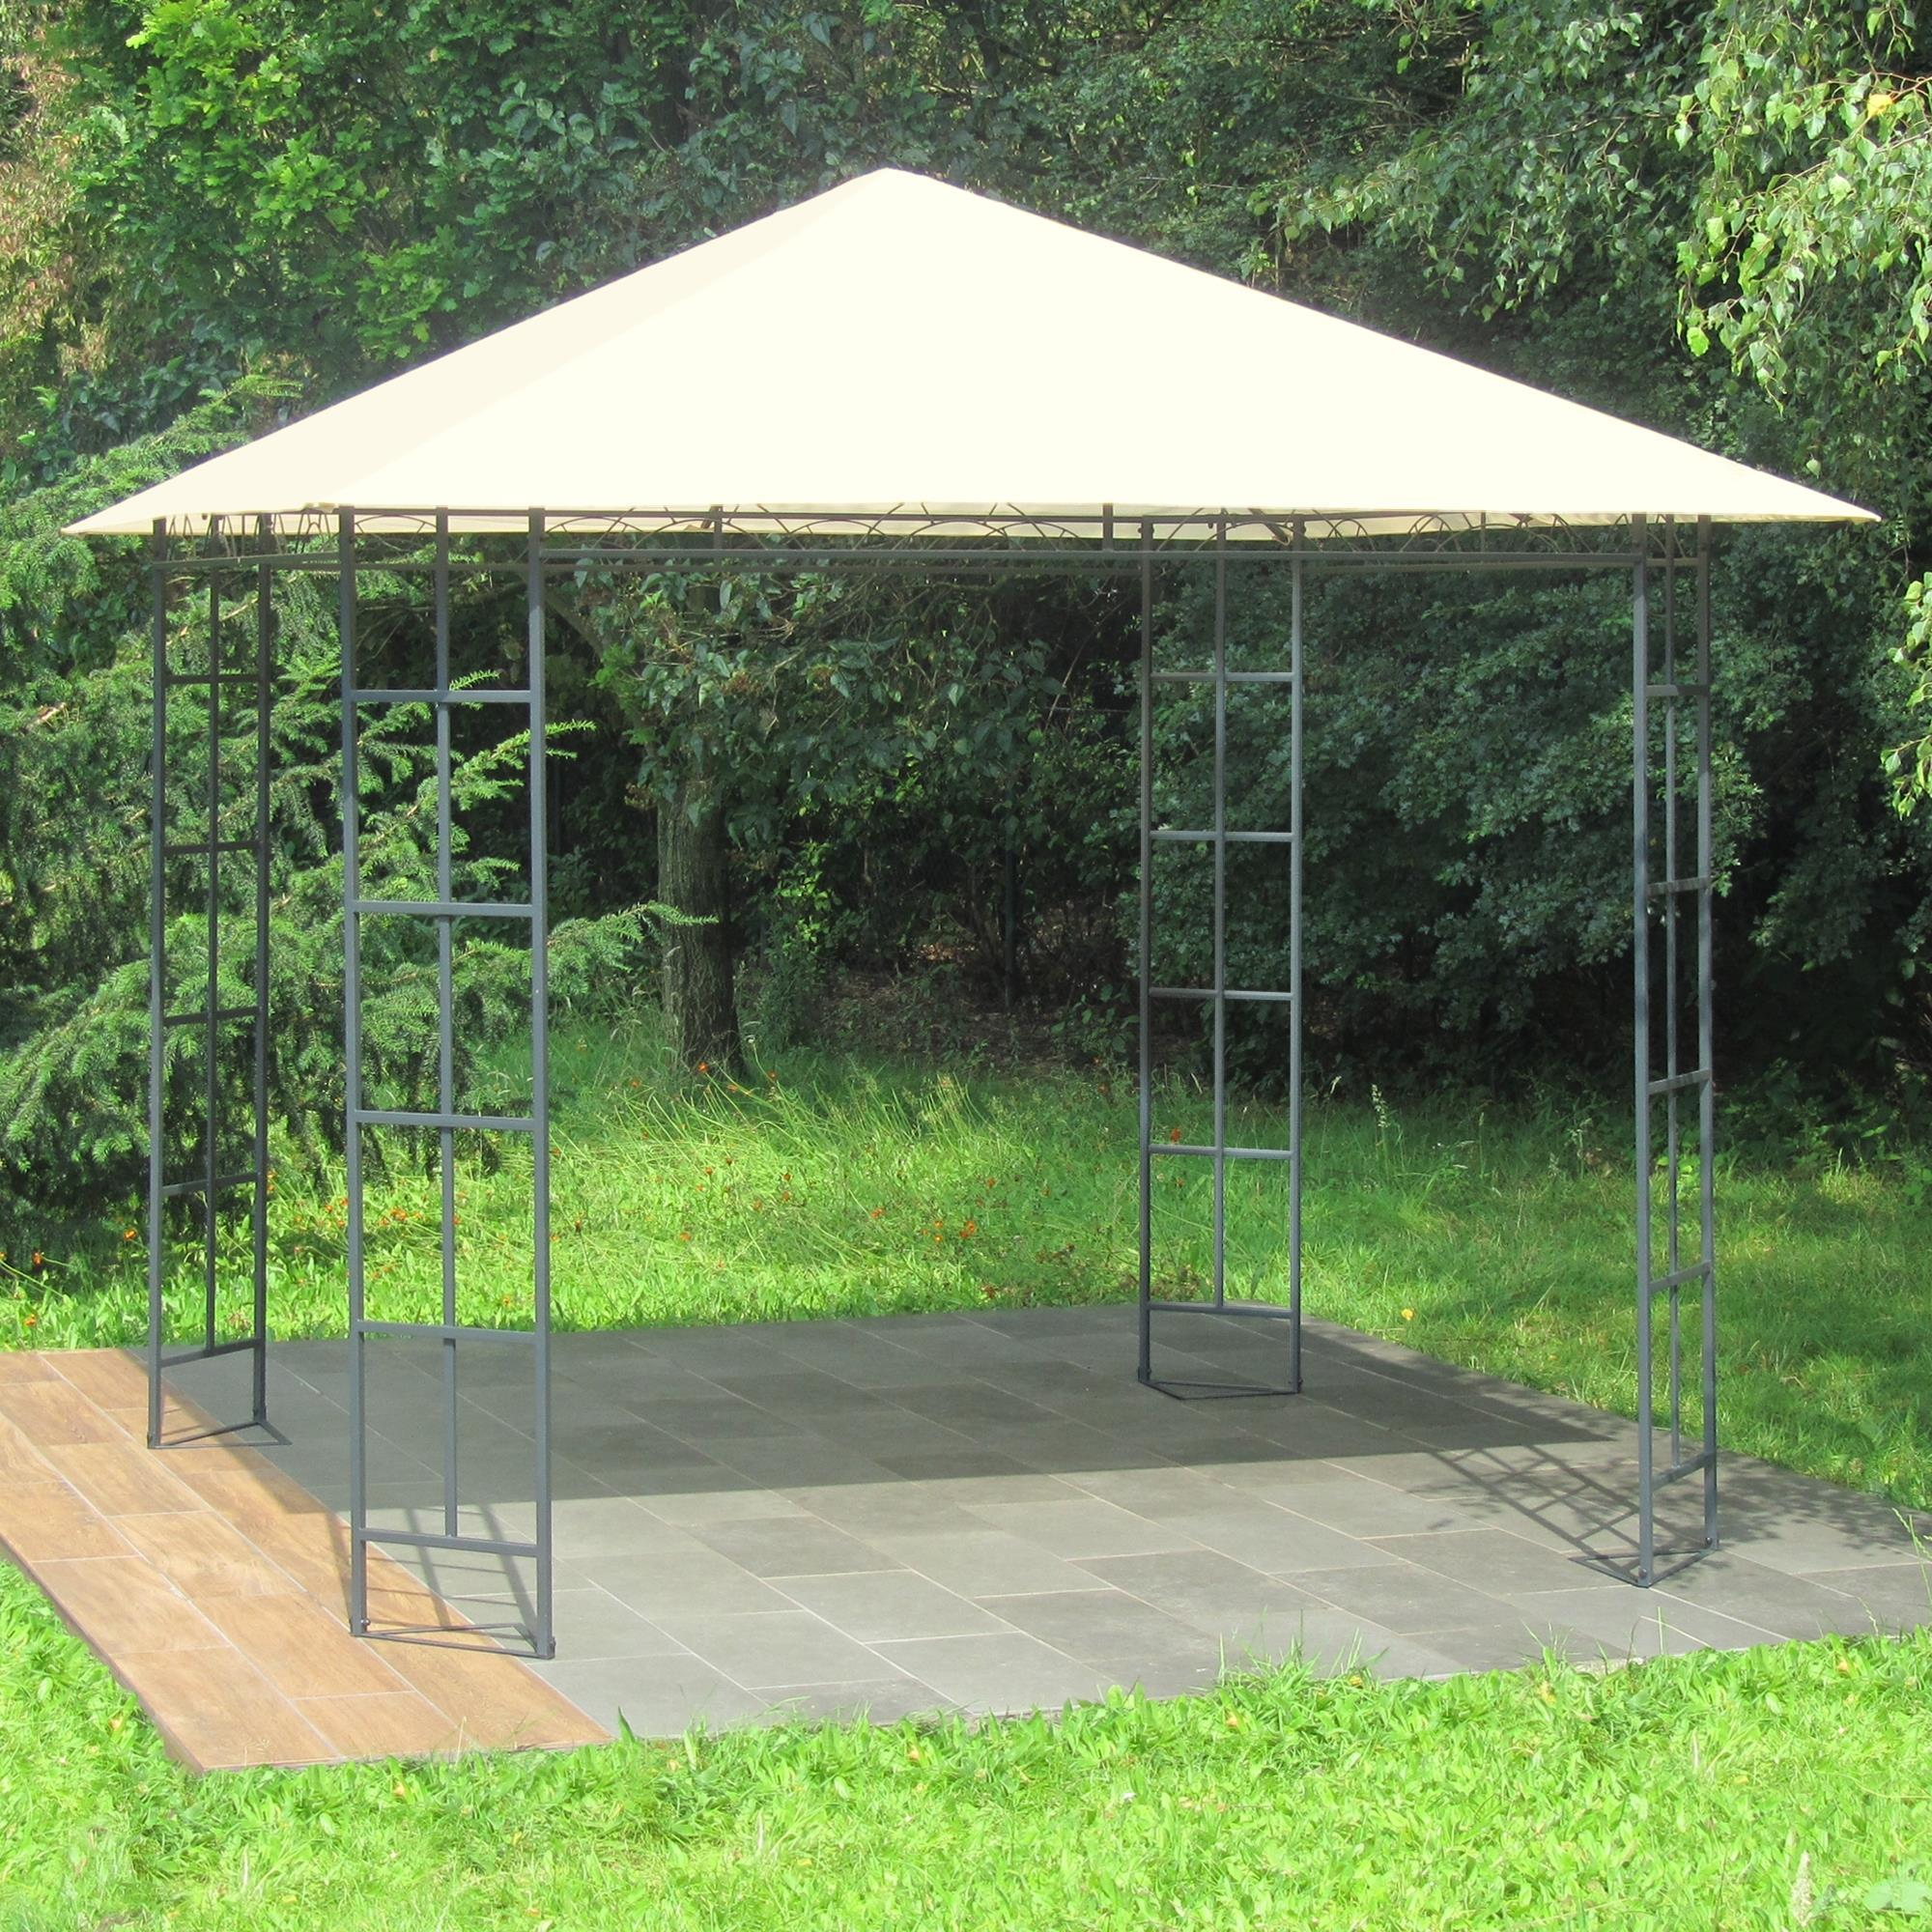 metall pavillon 3 x 3 m gartenpavillon anthrazit grau pulverbeschichtet dach in cremeton. Black Bedroom Furniture Sets. Home Design Ideas